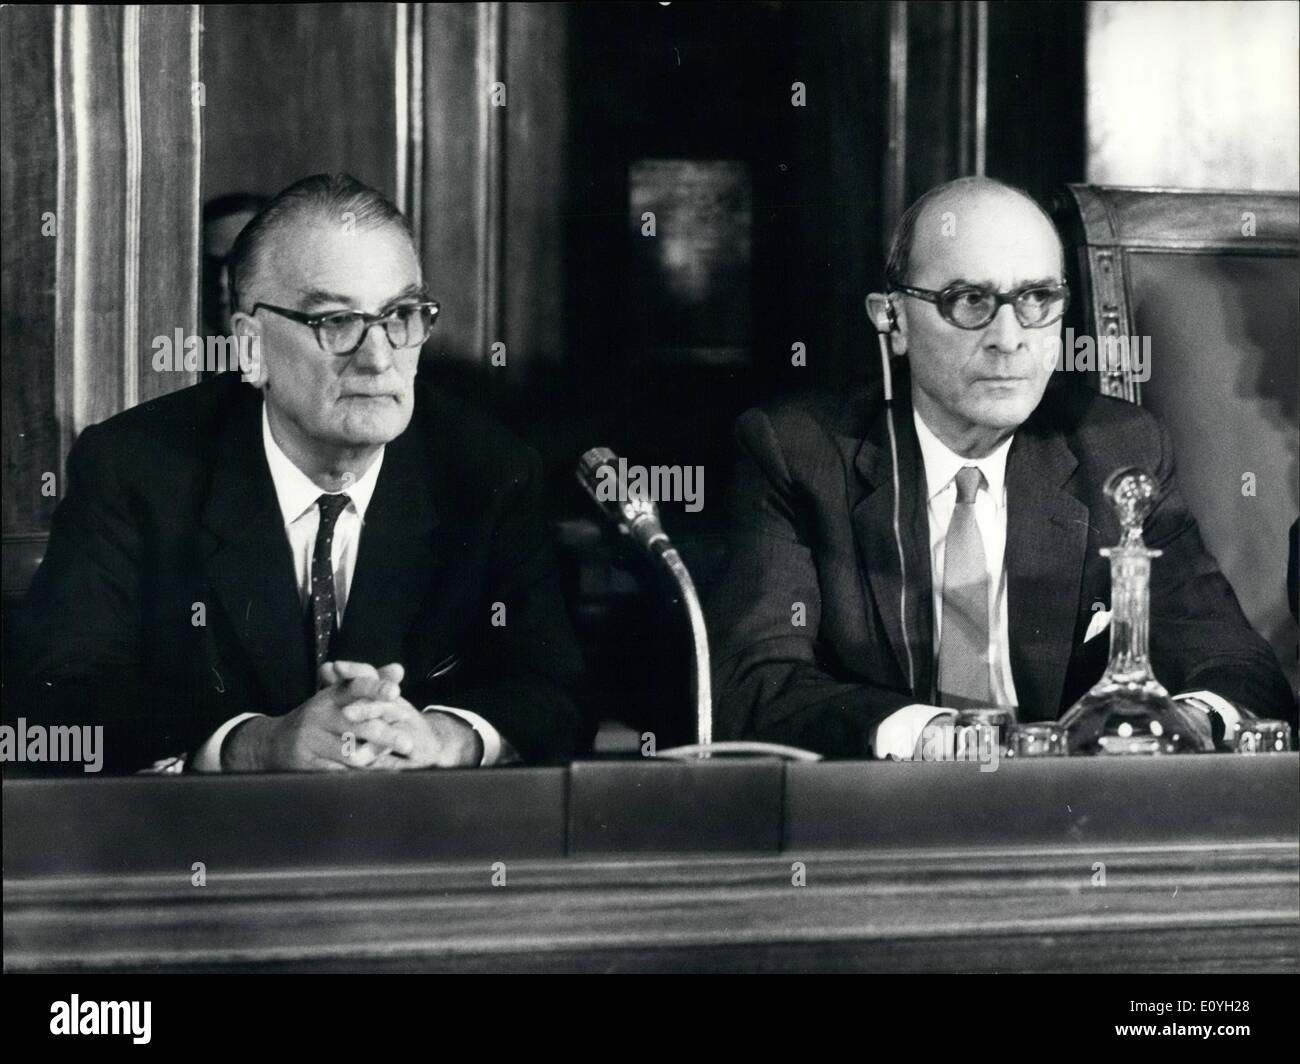 May 05, 1970 - The new general director of ILO Photo shows The old director of ILO, David Morse (Right) and Wilfried Jenks (left) the newly elected director. - Stock Image